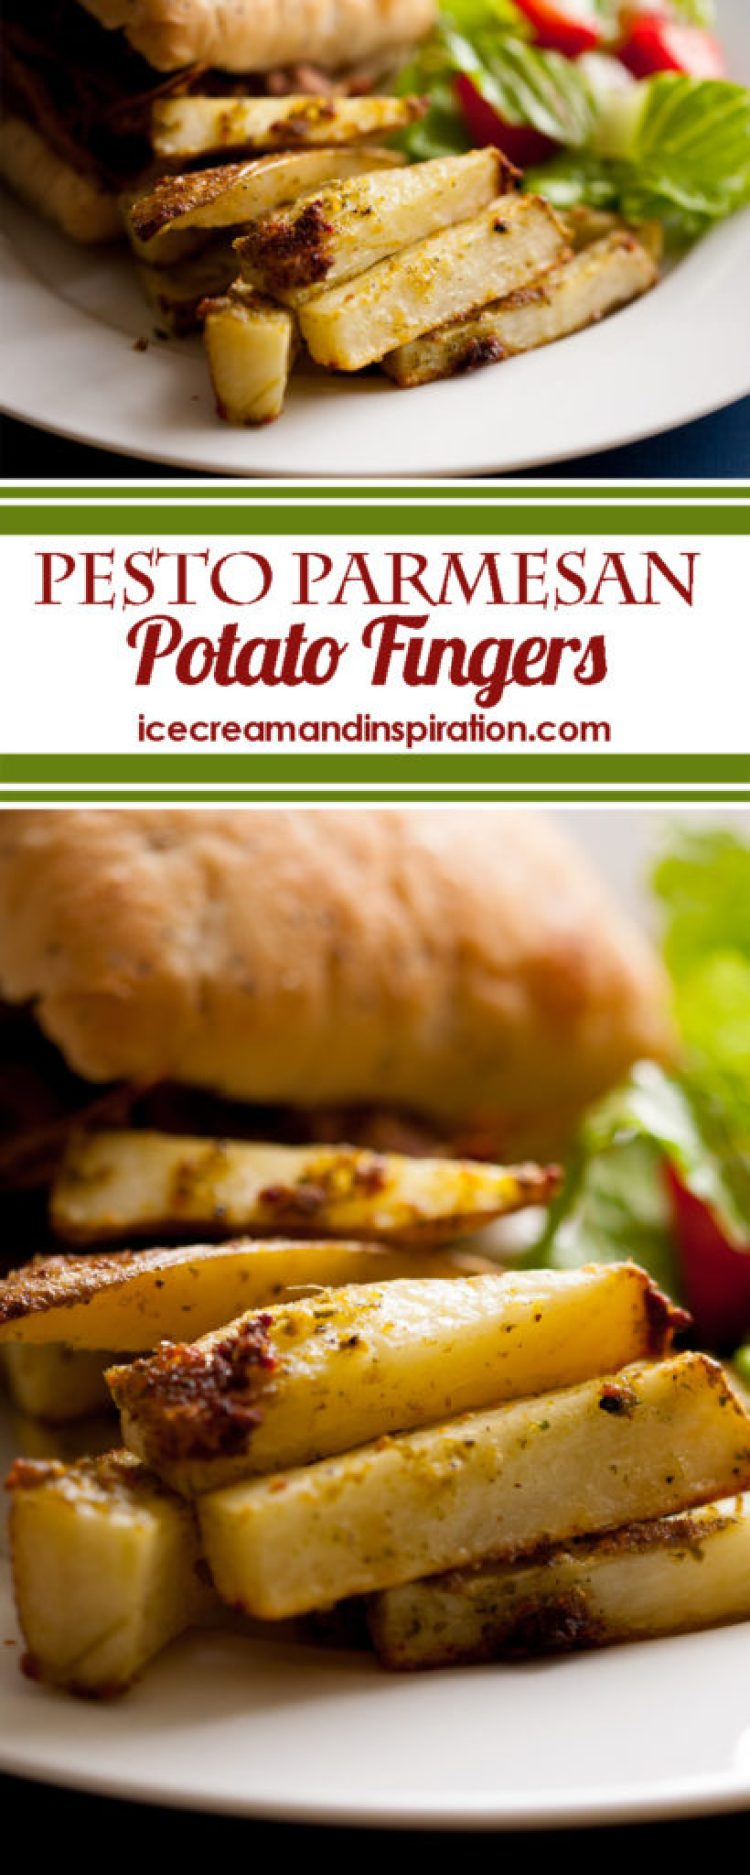 These Pesto Parmesan Potato Fingers are the perfect side for almost any meal and can be ready after a short 30 minutes in the oven! Made with pesto, dry ranch dressing, and other delicious spices, they will become a new family favorite!